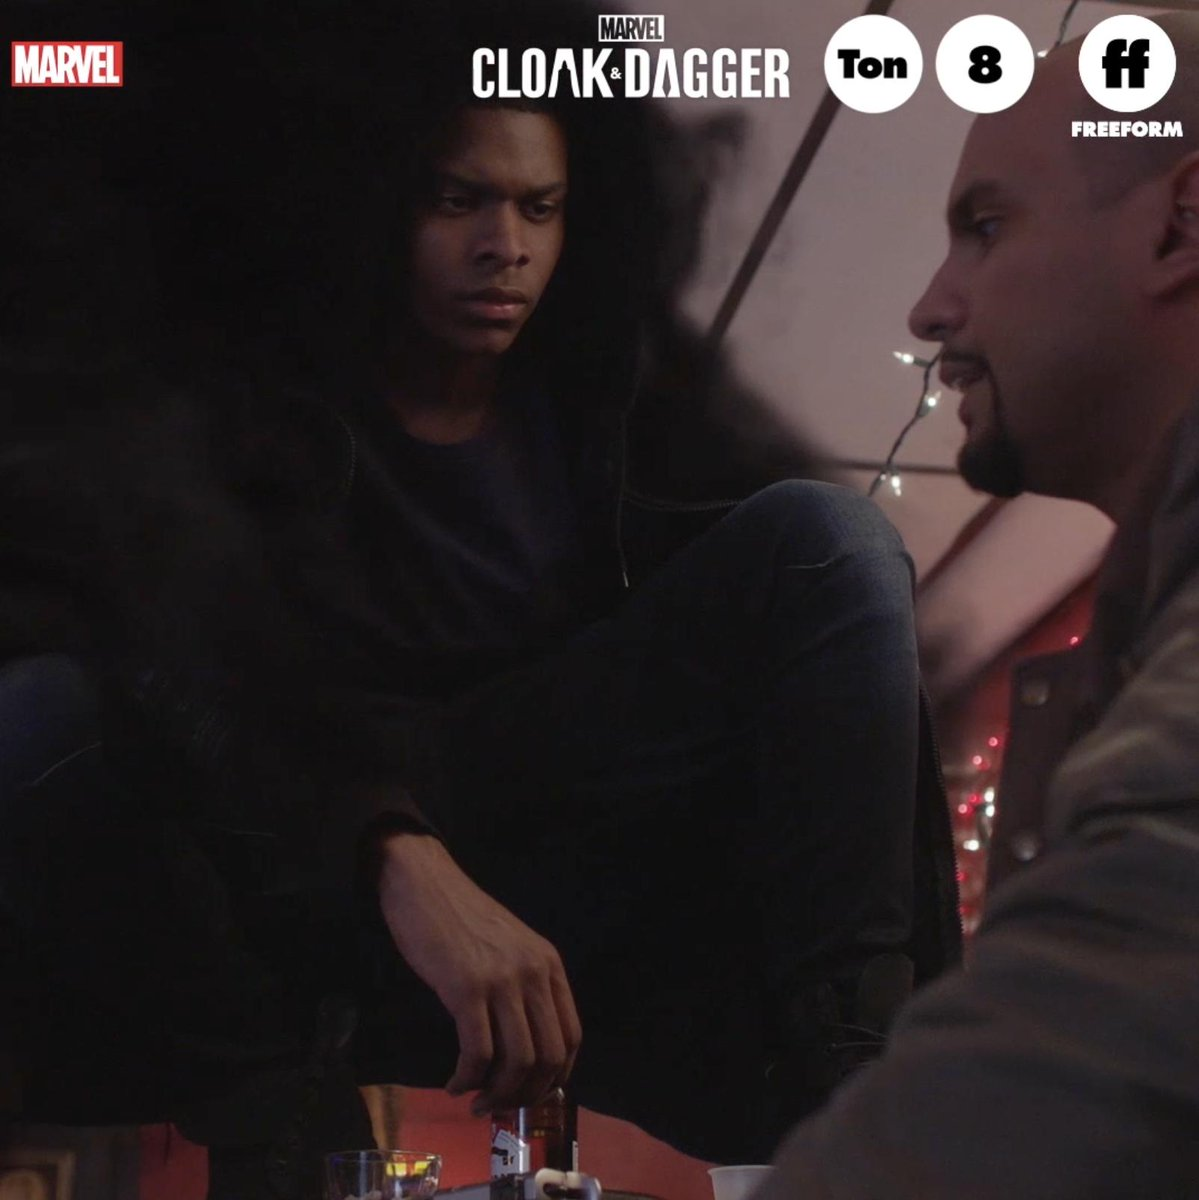 Marvel Entertainment's photo on #CloakAndDagger